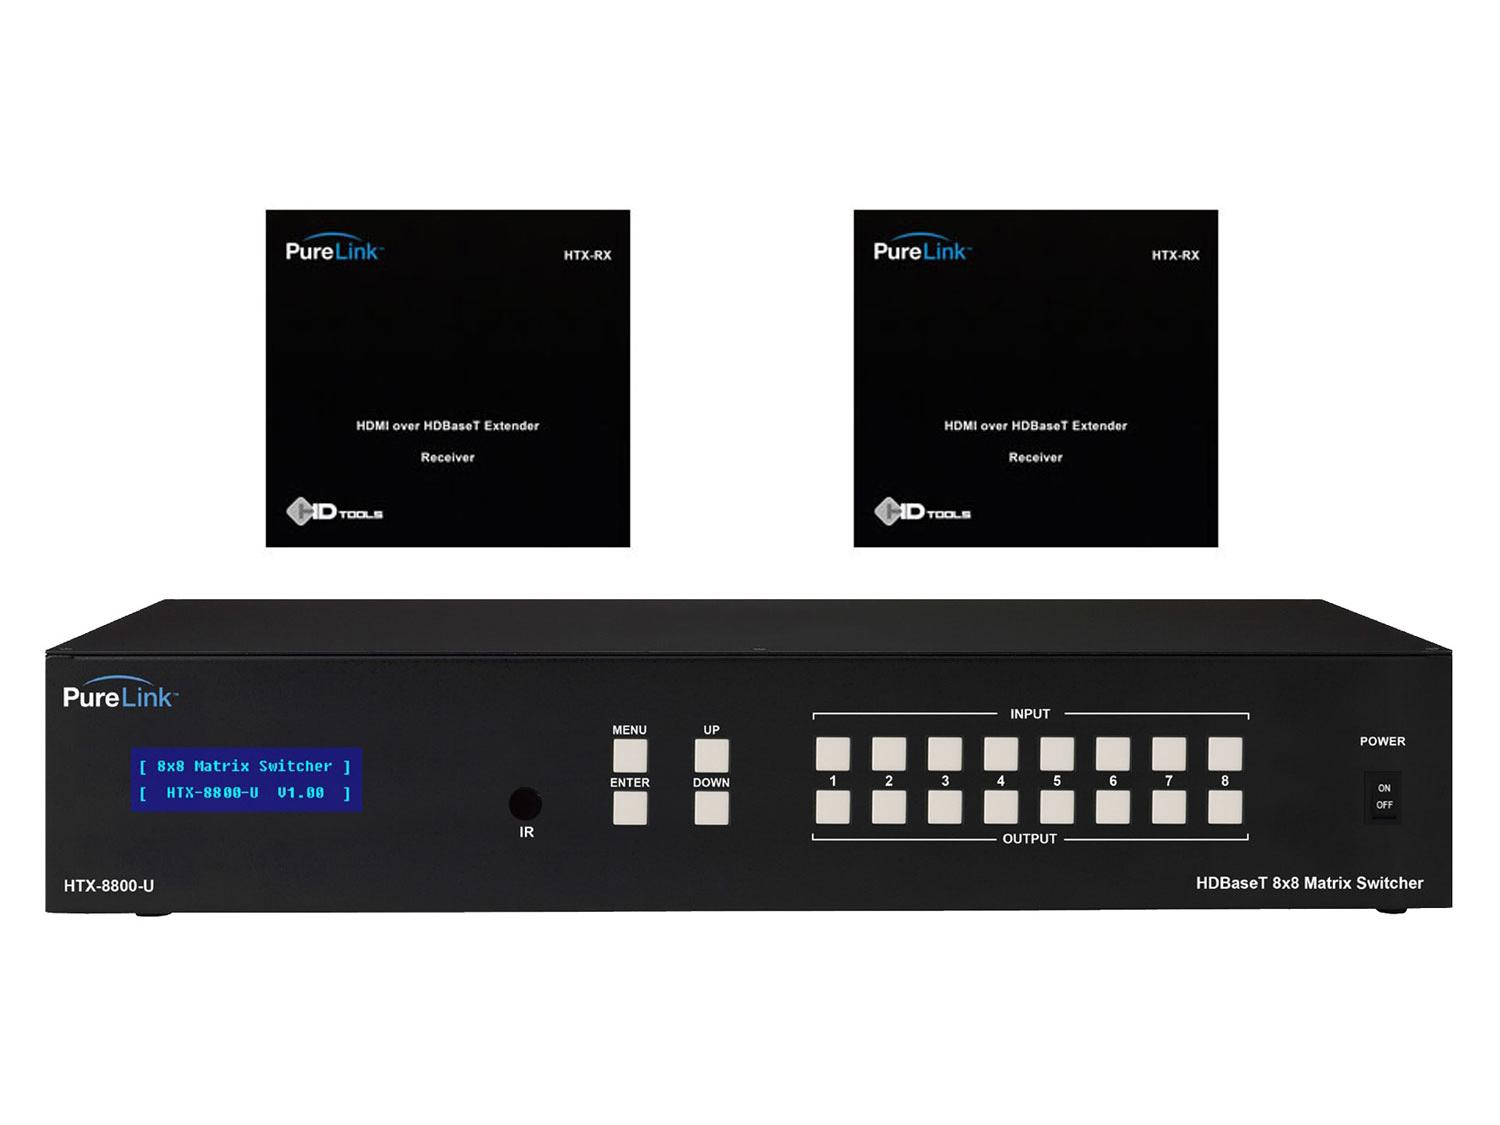 HTX-8800-U-KIT2 HTX-8800-U HDMI Switcher w (2) HTX Extender (Rx) Kit by PureLink